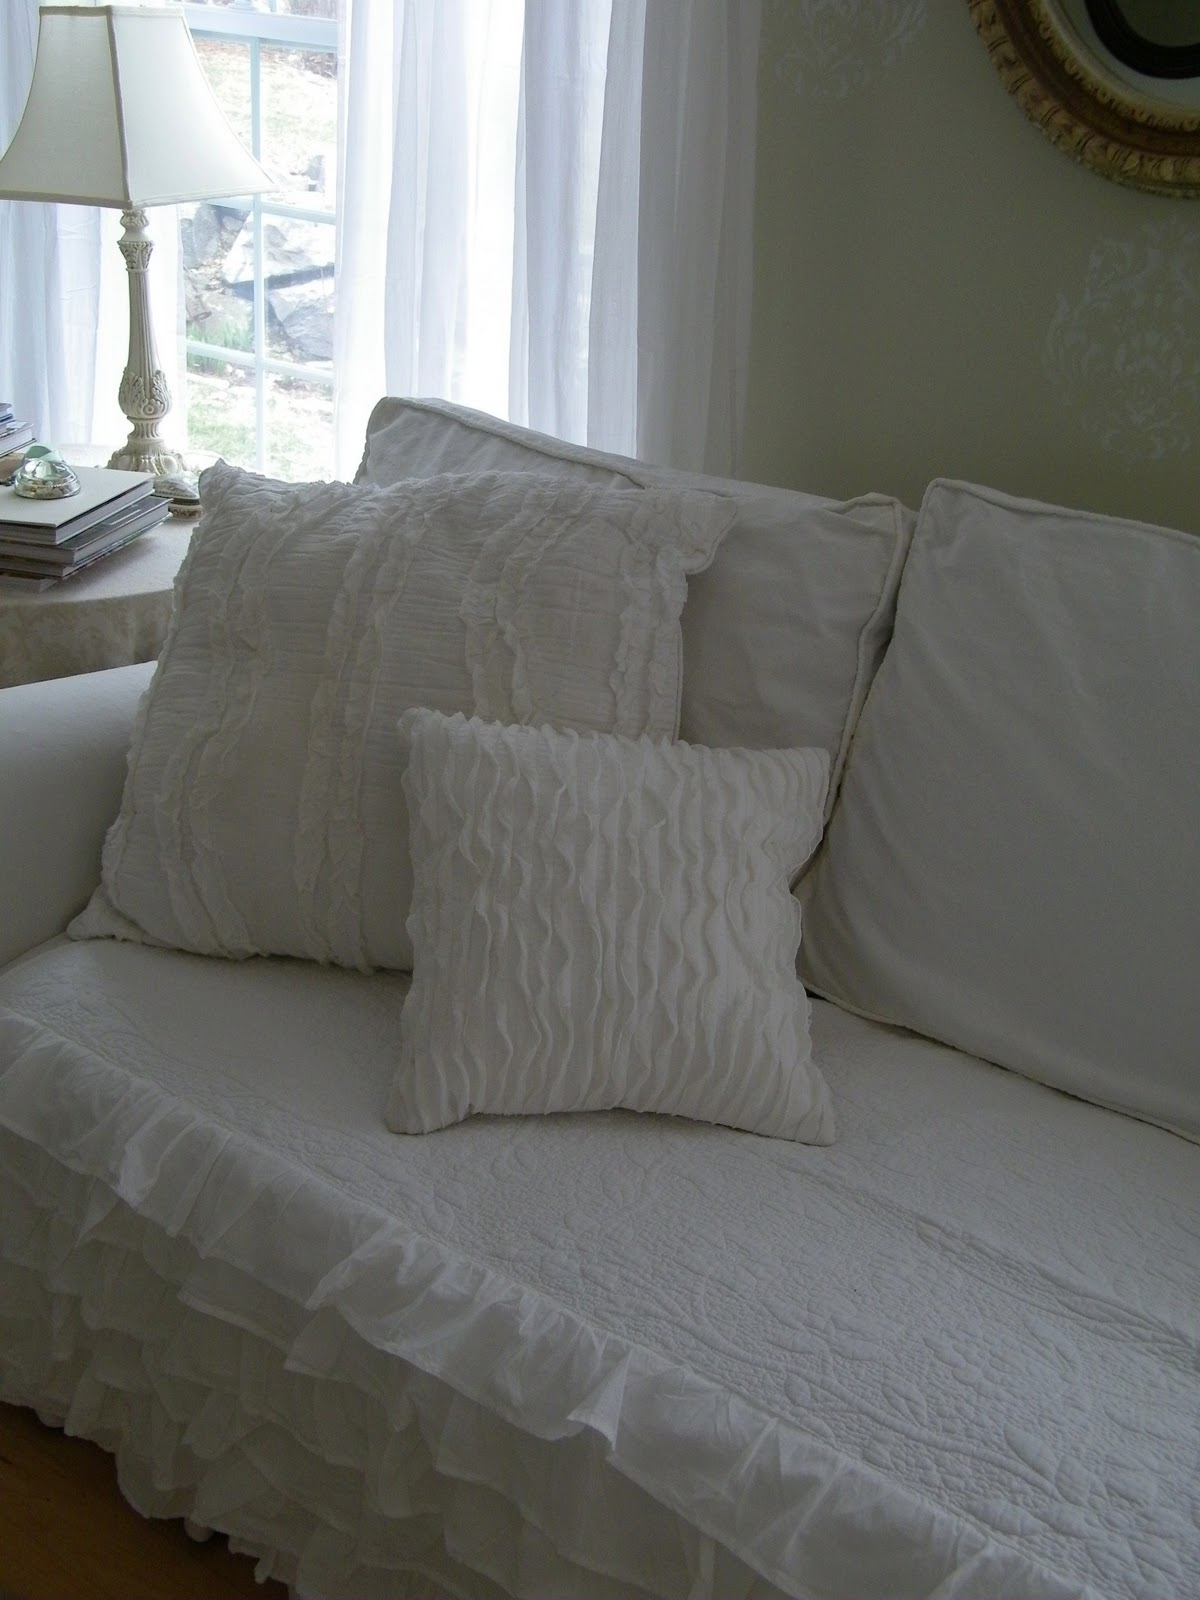 ruffled sofa slipcover how to fix broken springs in maison decor romantic smocking and ruffles